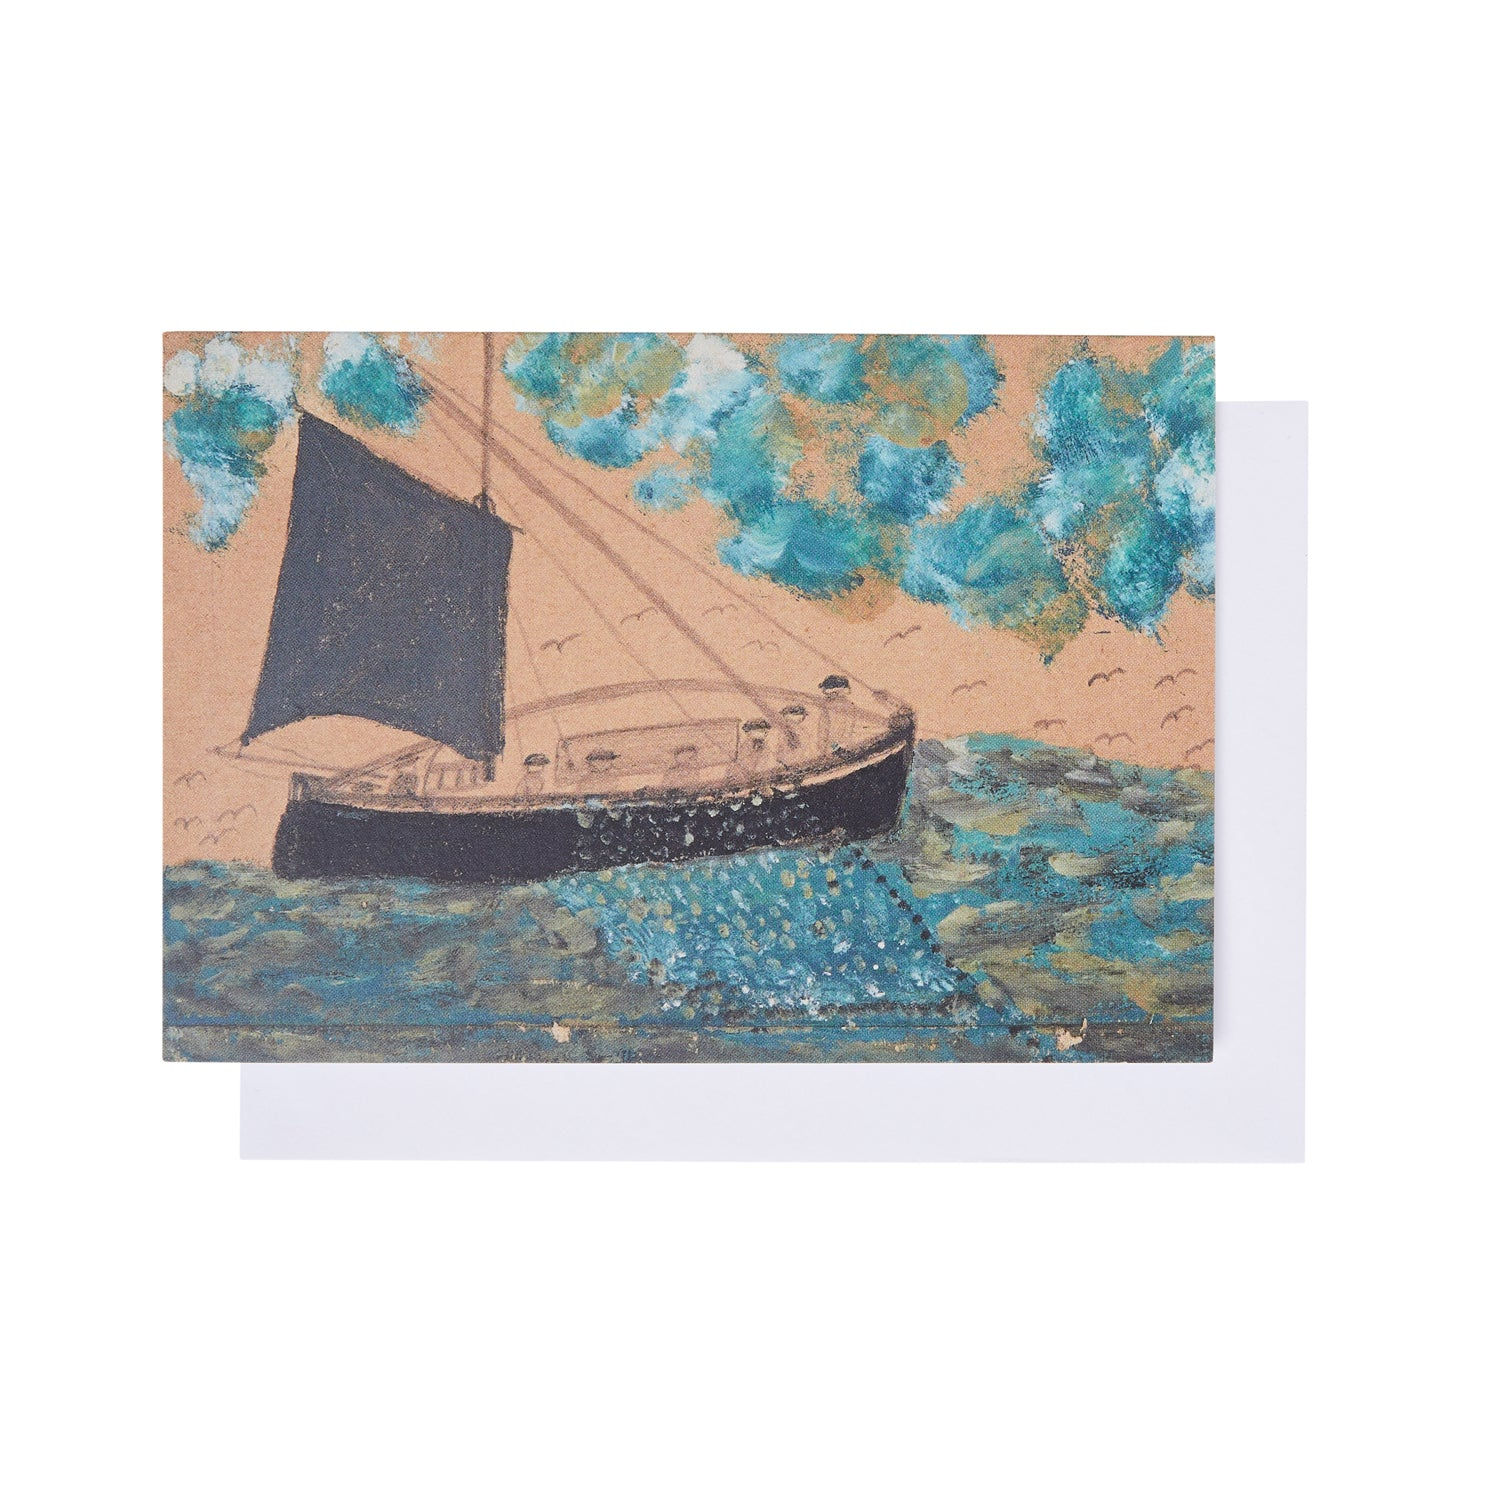 FME Alfred Wallis Pack of 10 A6 Notecards 2